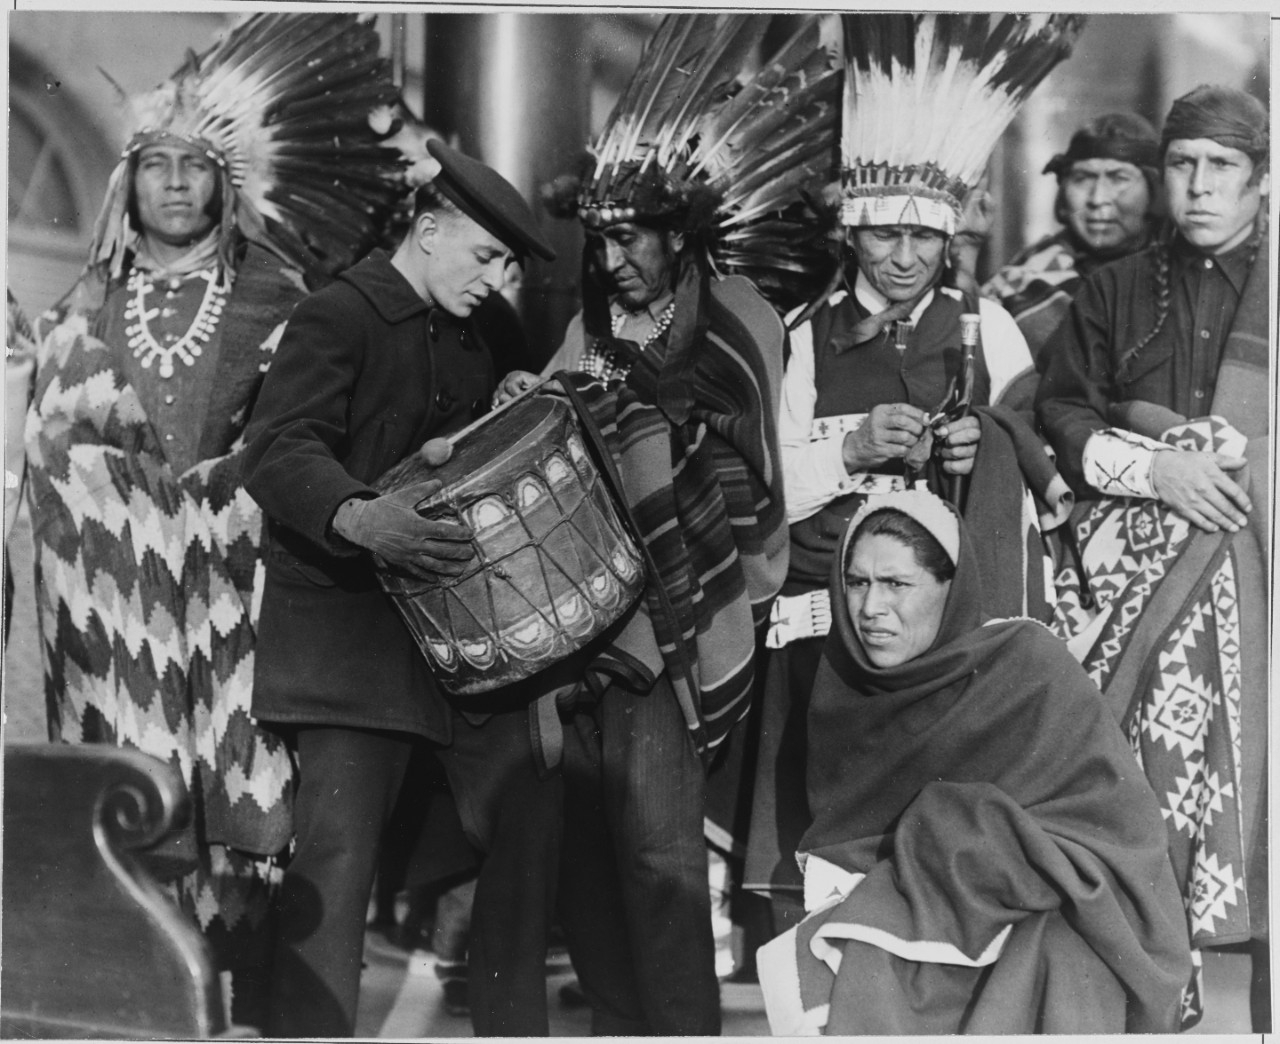 US Navy seaman with native American